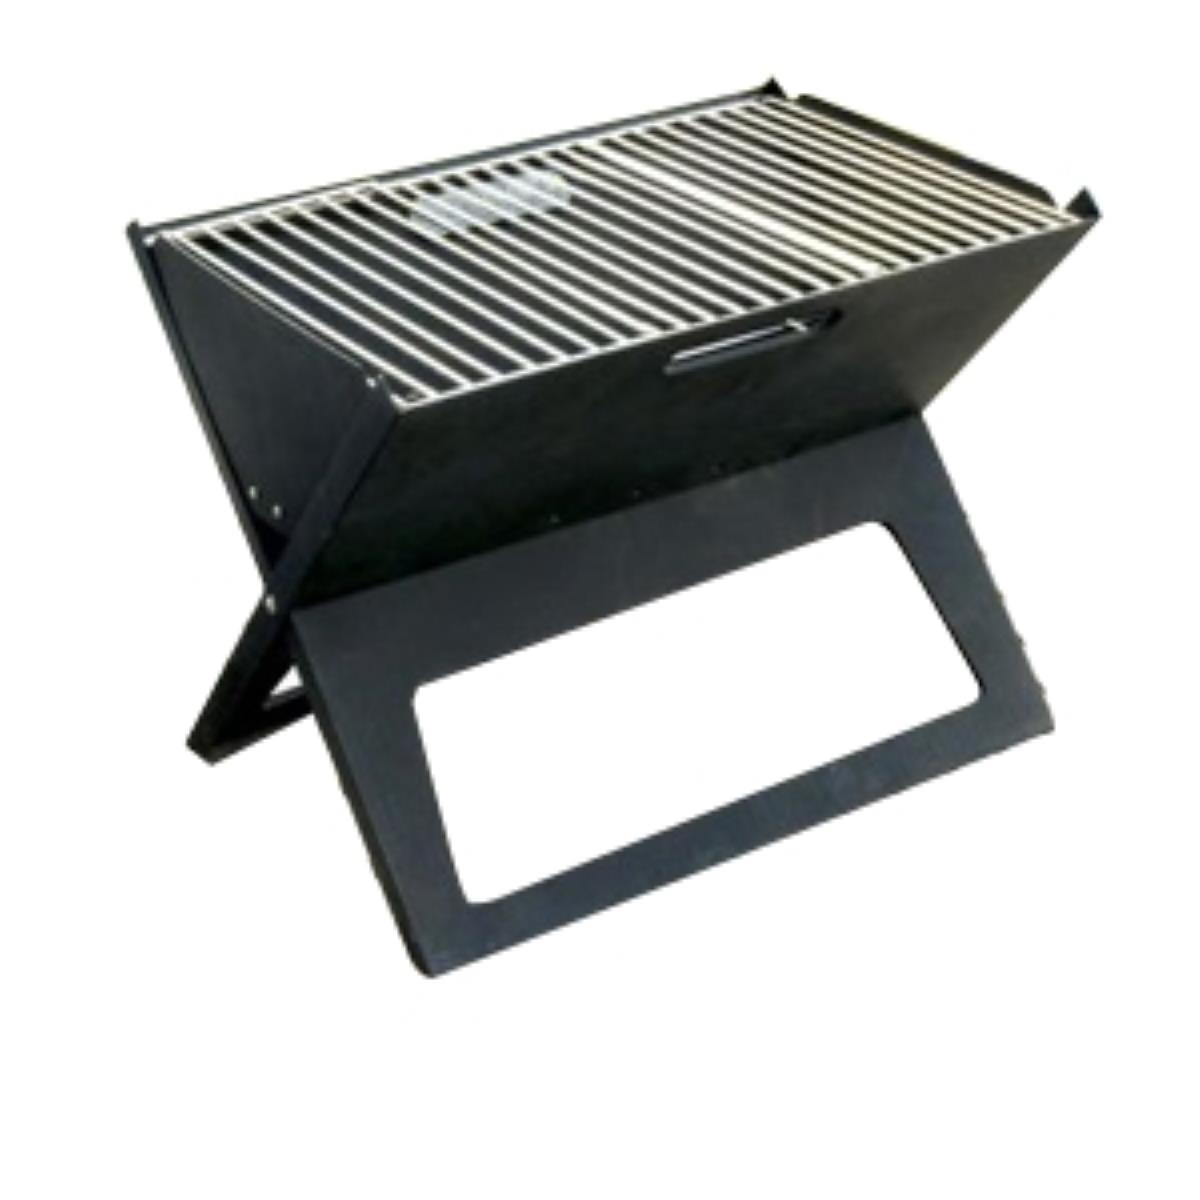 Fire Sense  60508  BBQ Grill  HotSpot  Outdoor  Portable  ;Black Steel